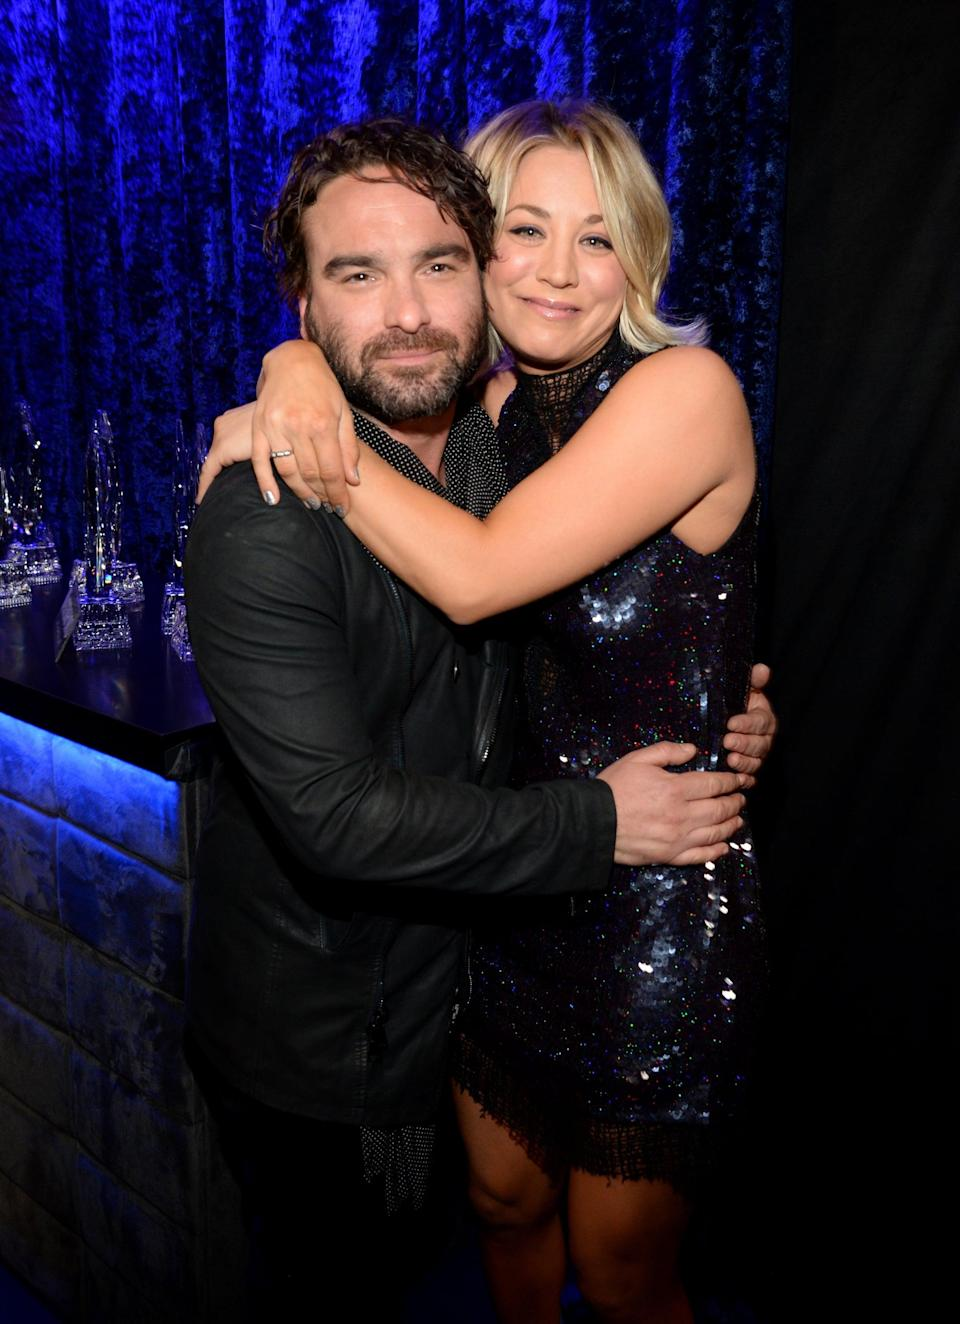 """<p>On <strong>The Big Bang Theory</strong>, Johnny and Kaley played neighbors turned lovers from 2007 to 2017, but you may not realize that the actors also dated in secret for two years. They got together soon after meeting on the show, but decided to end their own romance in 2009. </p> <p>Kaley first opened up about their relationship during a September 2010 interview with <strong>CBS Watch!</strong>, and <a href=""""http://www.usmagazine.com/celebrity-body/news/kaley-cuoco-secretly-dated-big-bang-theory-co-star-for-two-years-2010299/"""" class=""""link rapid-noclick-resp"""" rel=""""nofollow noopener"""" target=""""_blank"""" data-ylk=""""slk:she had nothing but good things to say"""">she had nothing but good things to say</a> about it. """"It was such a huge part of my life and no one knew about it,"""" she said. """"This is the first time I've ever talked about it, ever. It was a wonderful relationship, but we never spoke a word about it and never went anywhere together."""" Later, she added, """"We knew we weren't destined to be together. We accepted it and said, 'Look, if we ever break up, we will be professional.' I'm so lucky it was a mutual ending and that we don't hate each other."""" </p> <p>Johnny expressed a similar sentiment during his own interview with <strong>CBS Watch! </strong>in December 2013, saying that <a href=""""http://www.usmagazine.com/celebrity-news/news/johnny-galecki-opens-up-about-secret-two-year-romance-with-kaley-cuoco-were-dear-friends-2013711/"""" class=""""link rapid-noclick-resp"""" rel=""""nofollow noopener"""" target=""""_blank"""" data-ylk=""""slk:he and Kaley remained close"""">he and Kaley remained close</a>. """"We're dear friends, still. Kaley's not just an ex - she's a part of my life,"""" he said. """"I just don't like to speak about it. And not because I'm trying to be enigmatic; I just worry that it will conflict with people's acceptance of Leonard and Penny. I get the curiosity, but I don't want to distract from the story.""""</p>"""